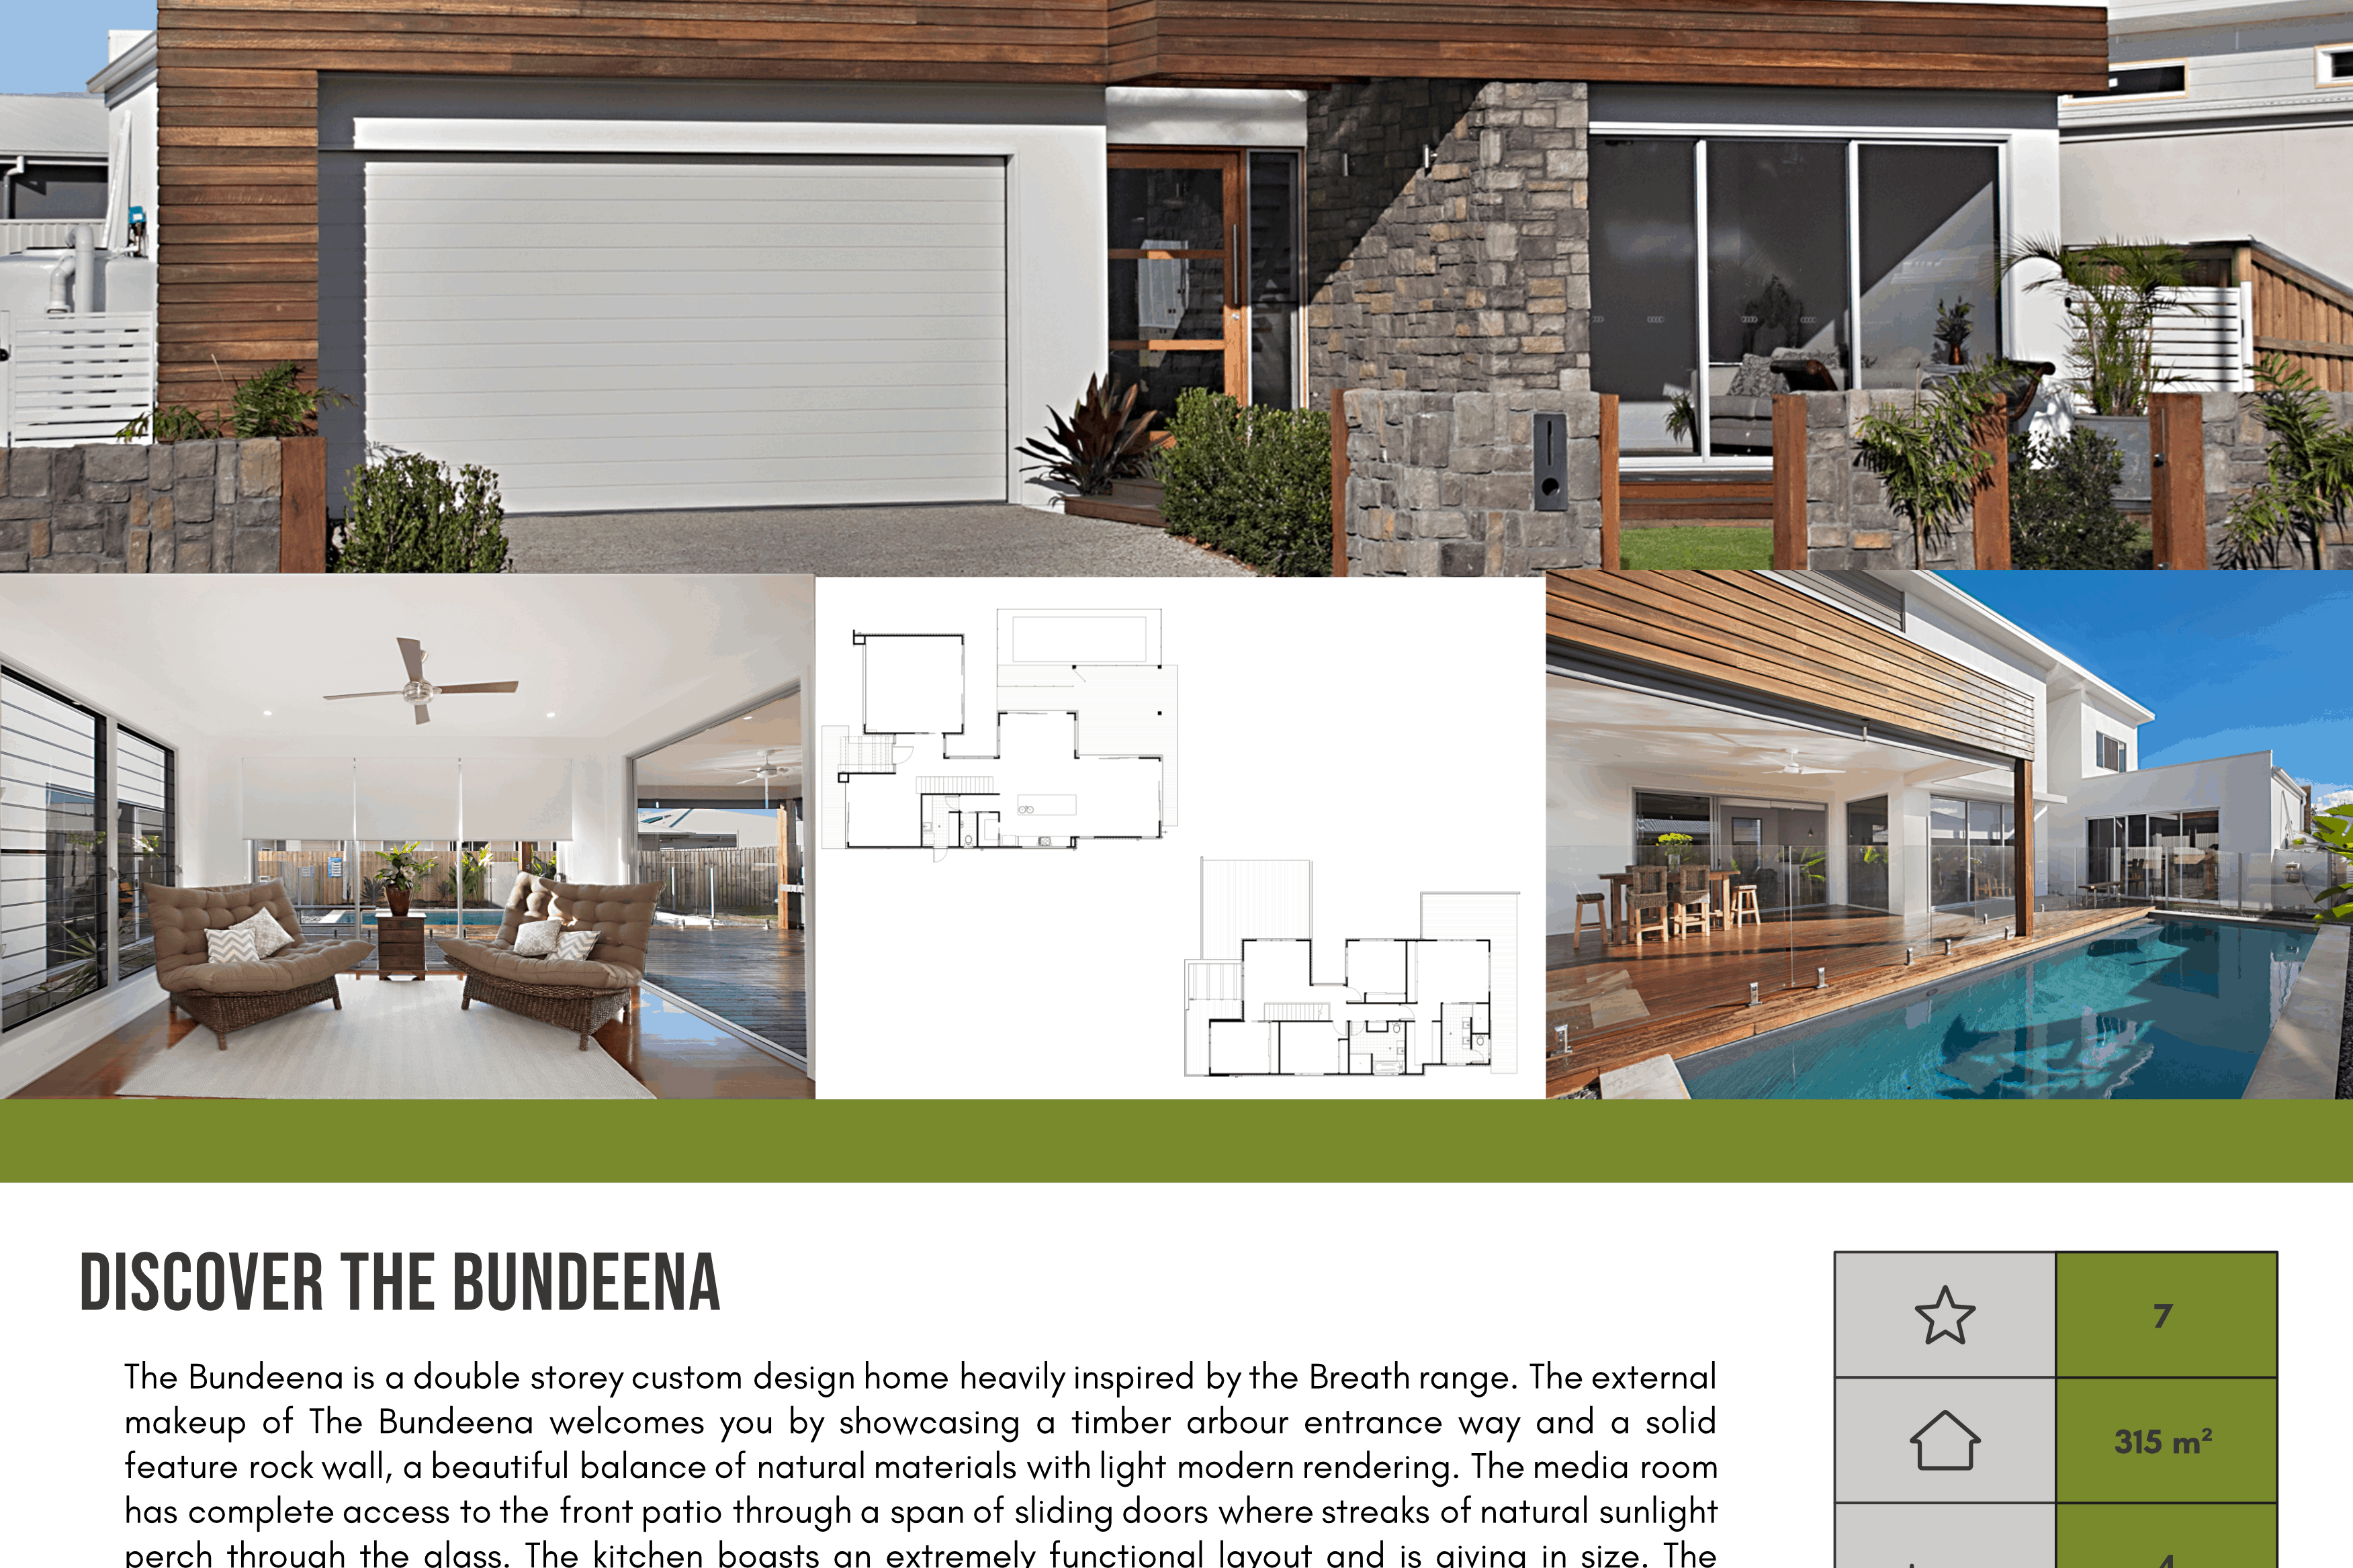 Bundeena Brochure Download